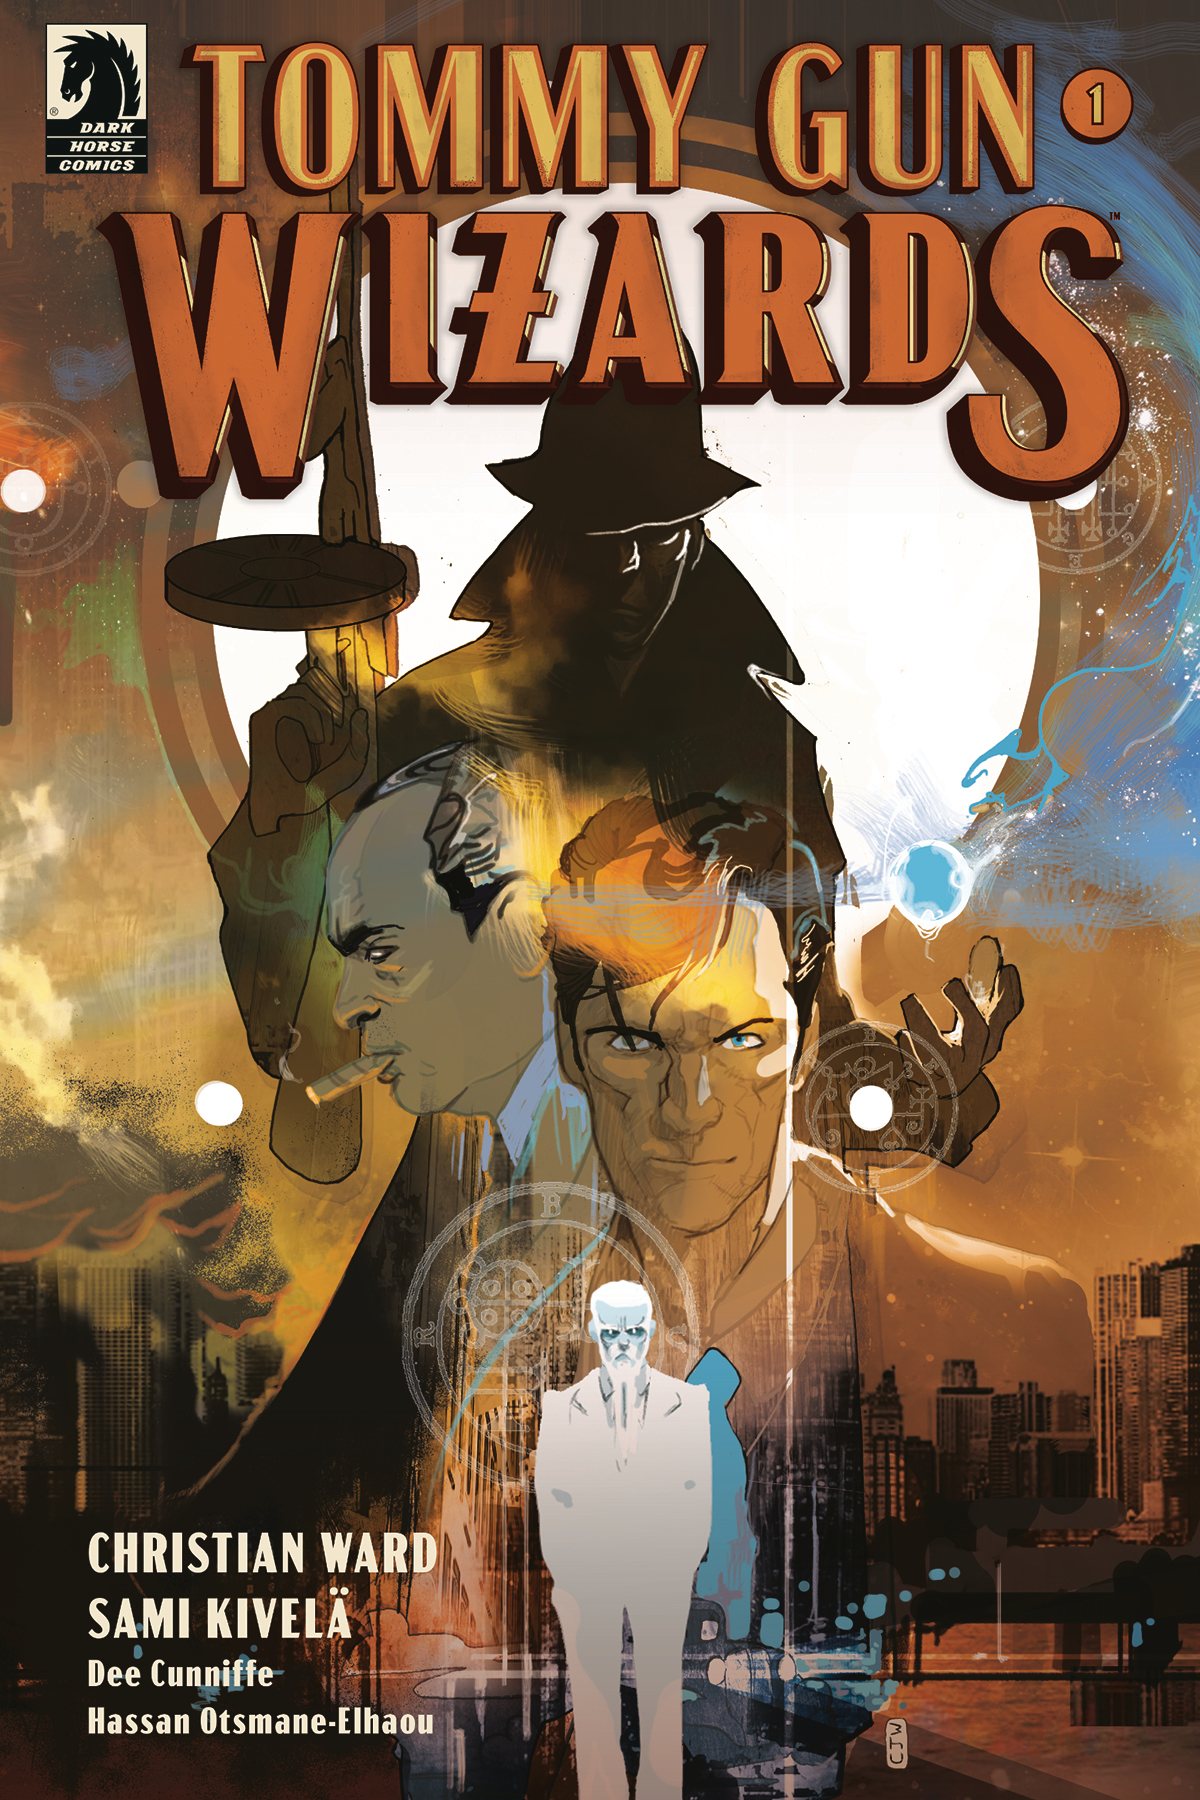 Tommy Gun Wizards #1  is out 8/28/2019.